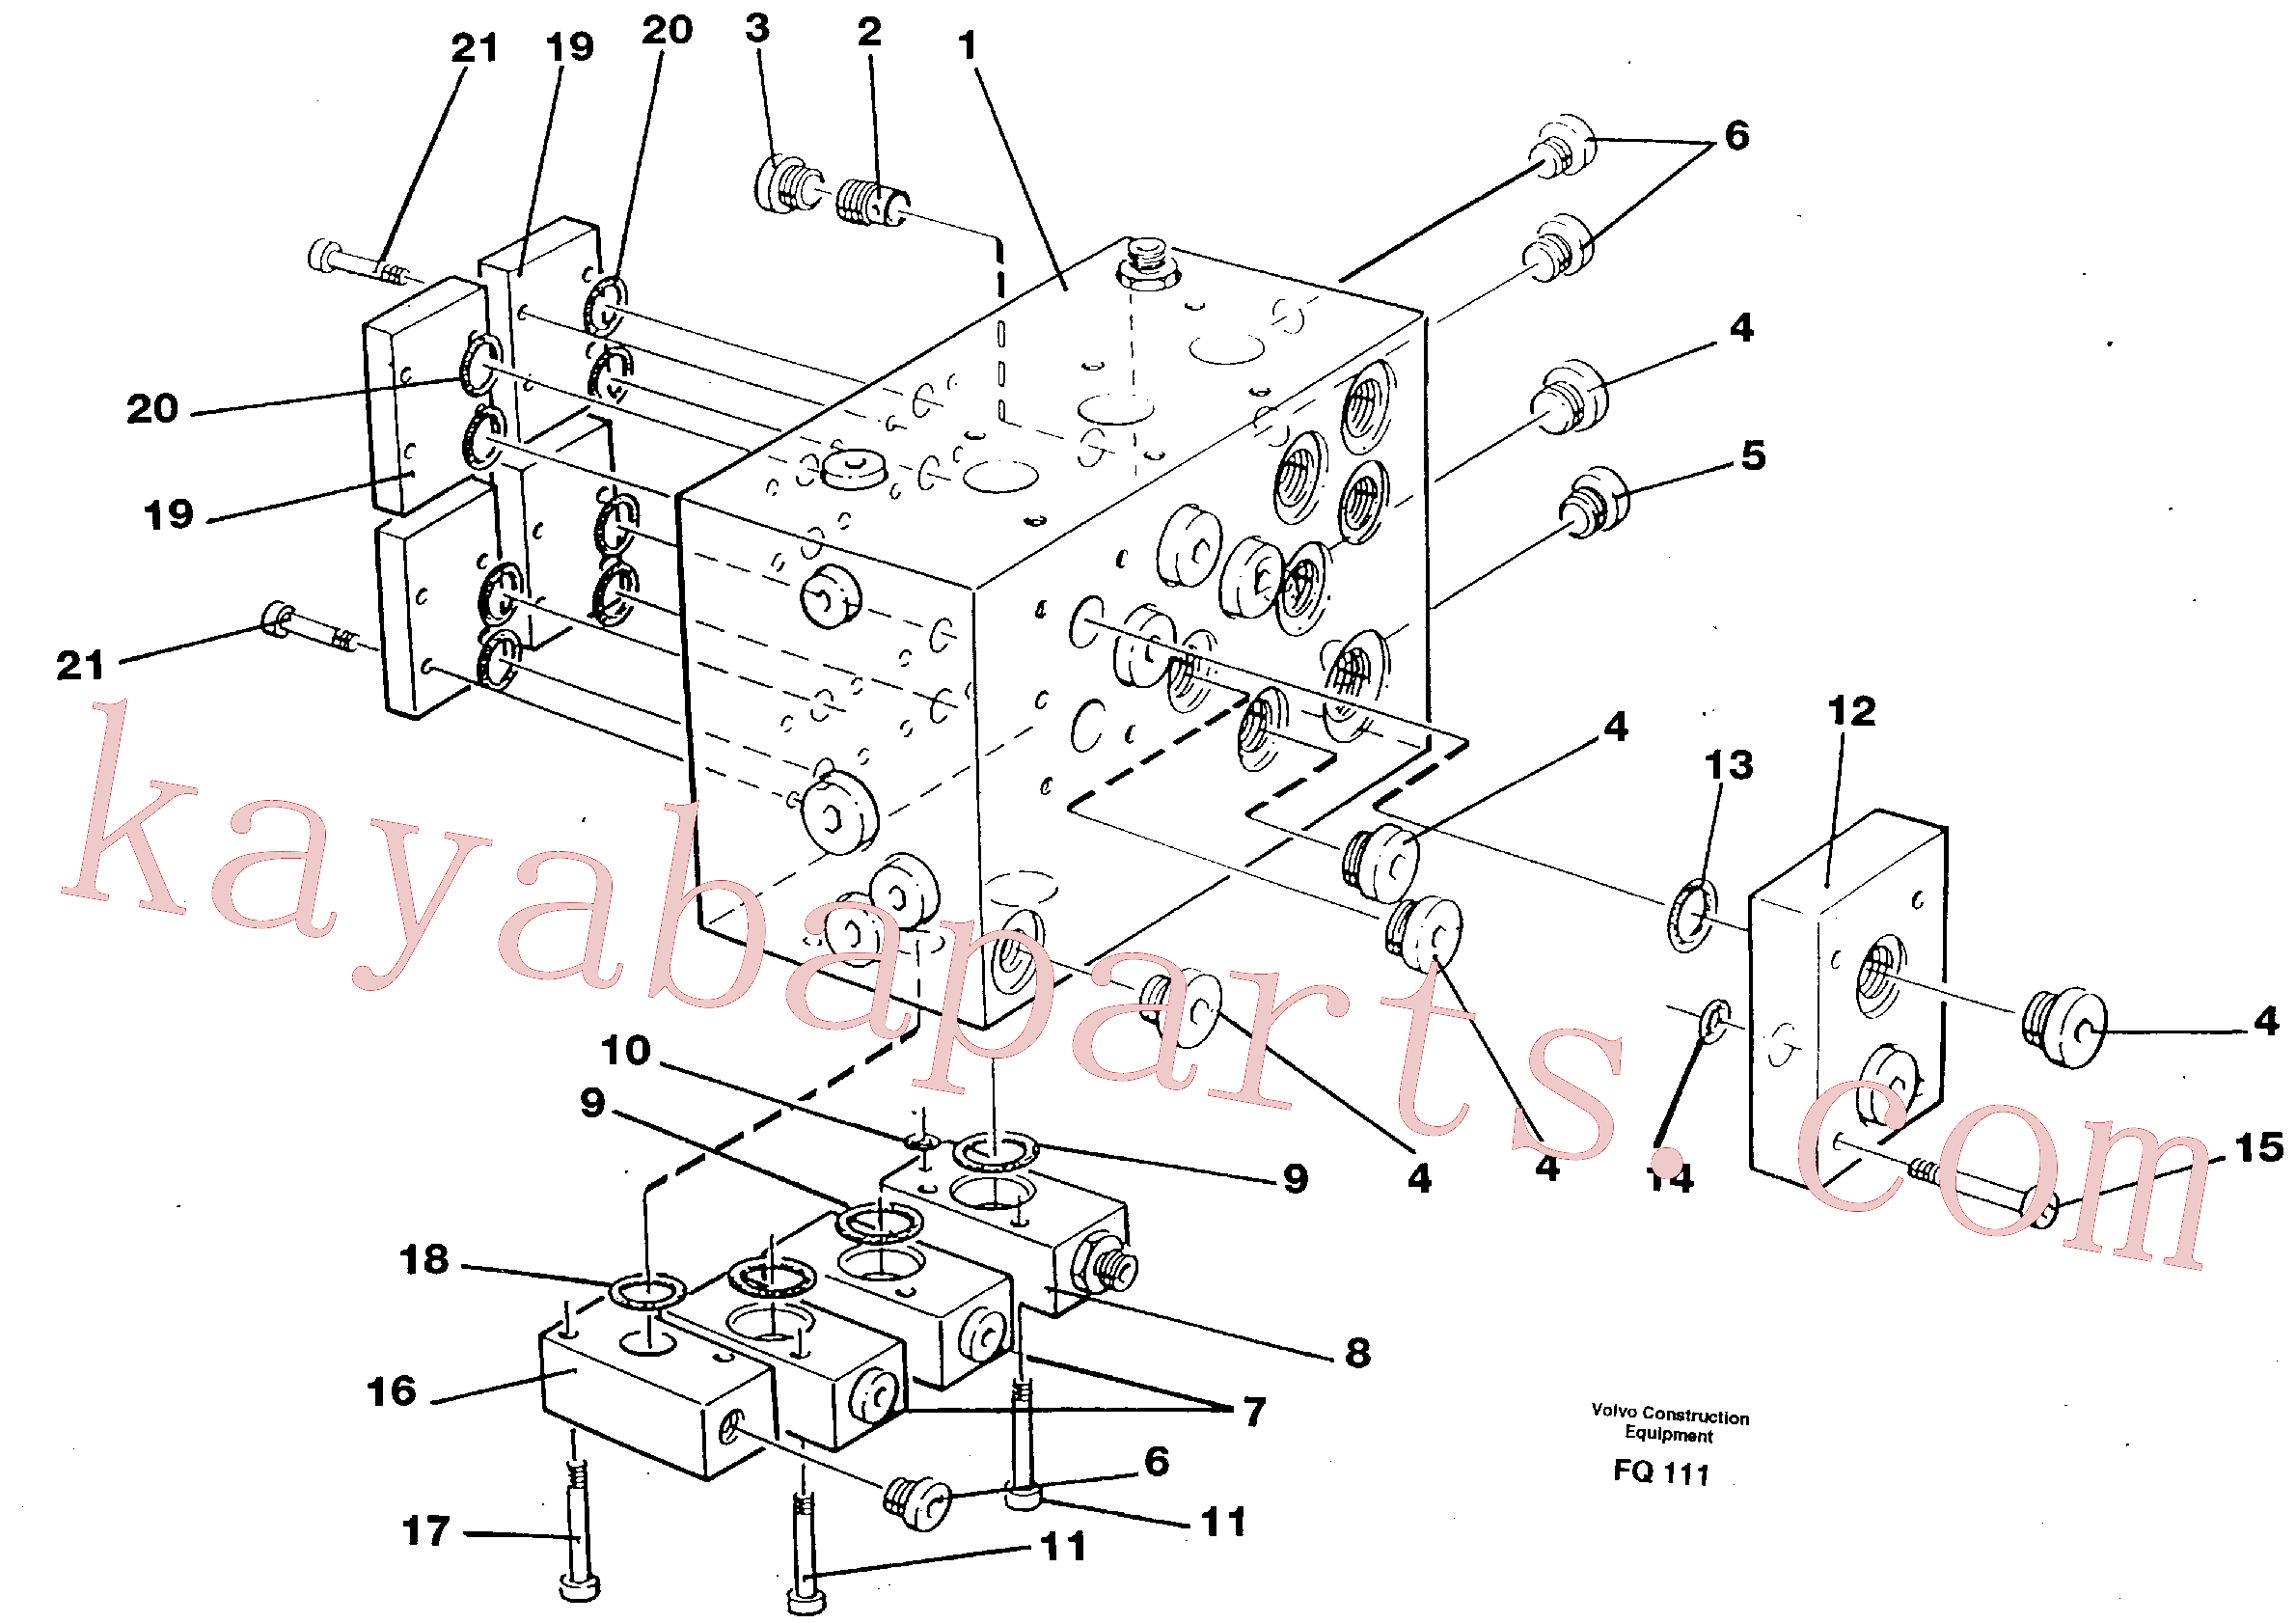 VOE14023407 for Volvo Slew valve assembly block(FQ111 assembly)